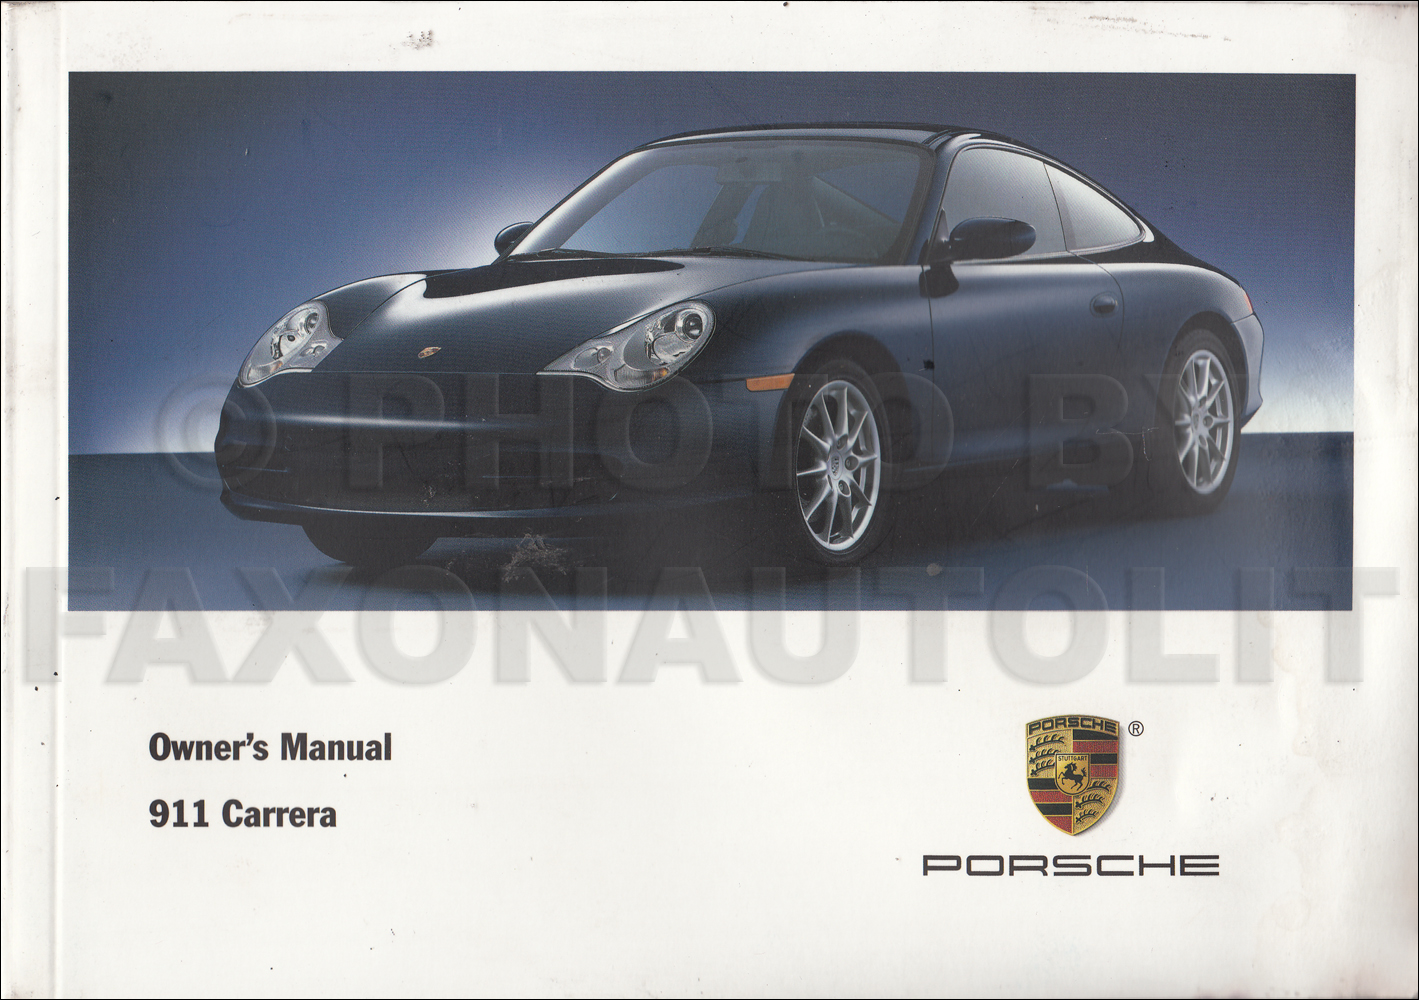 2003 Porsche 911 Carrera Owner's Manual Original. 2005 Nissan Maxima CD-ROM Repair  Manual